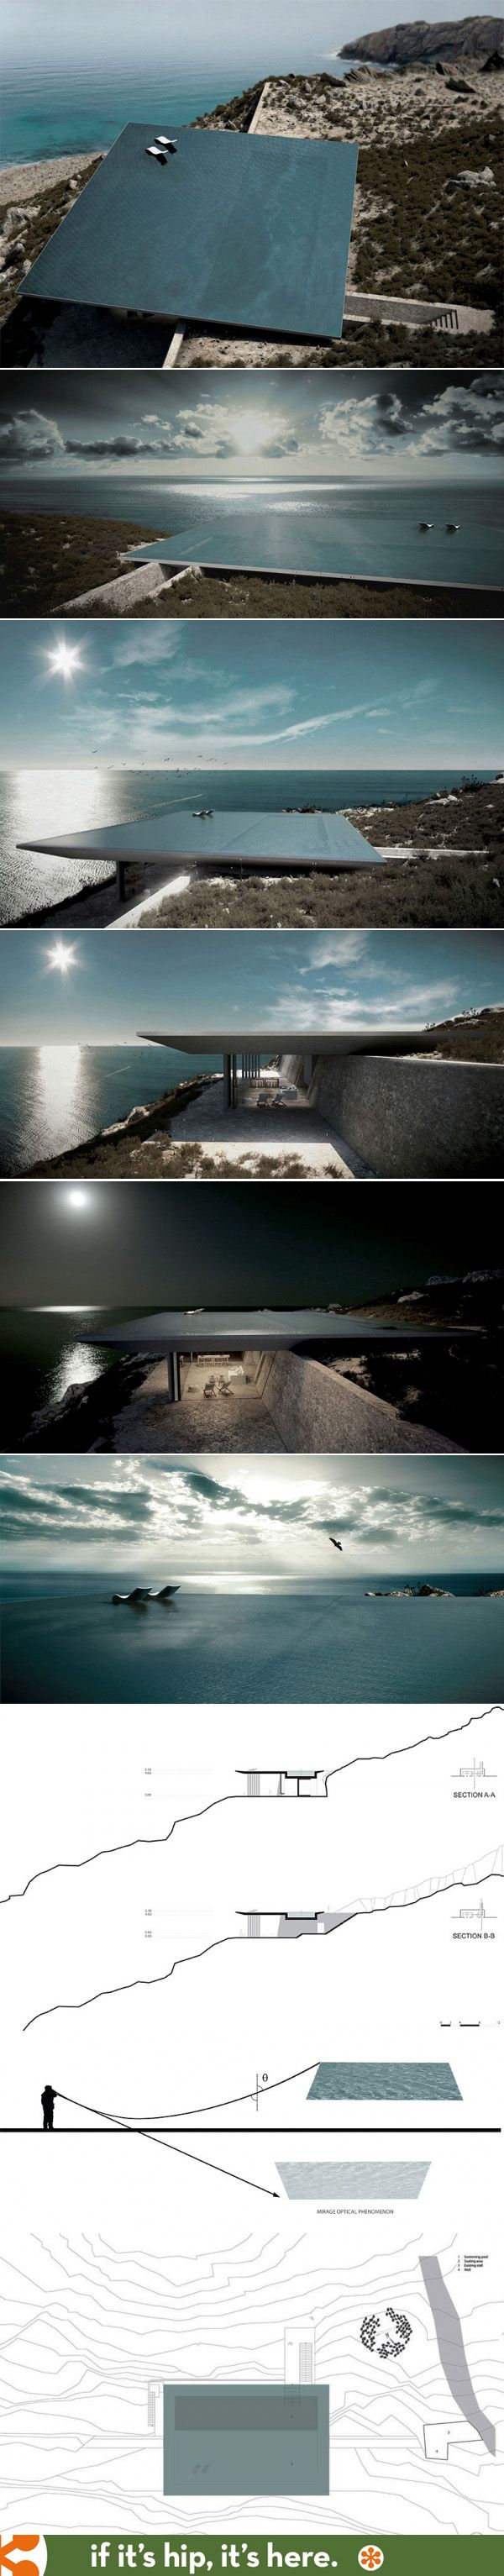 ριитєяєѕт: @ѕσρнιєкαтєℓσνєѕ | Rimless pool serves as roof for hillside home in Greece.